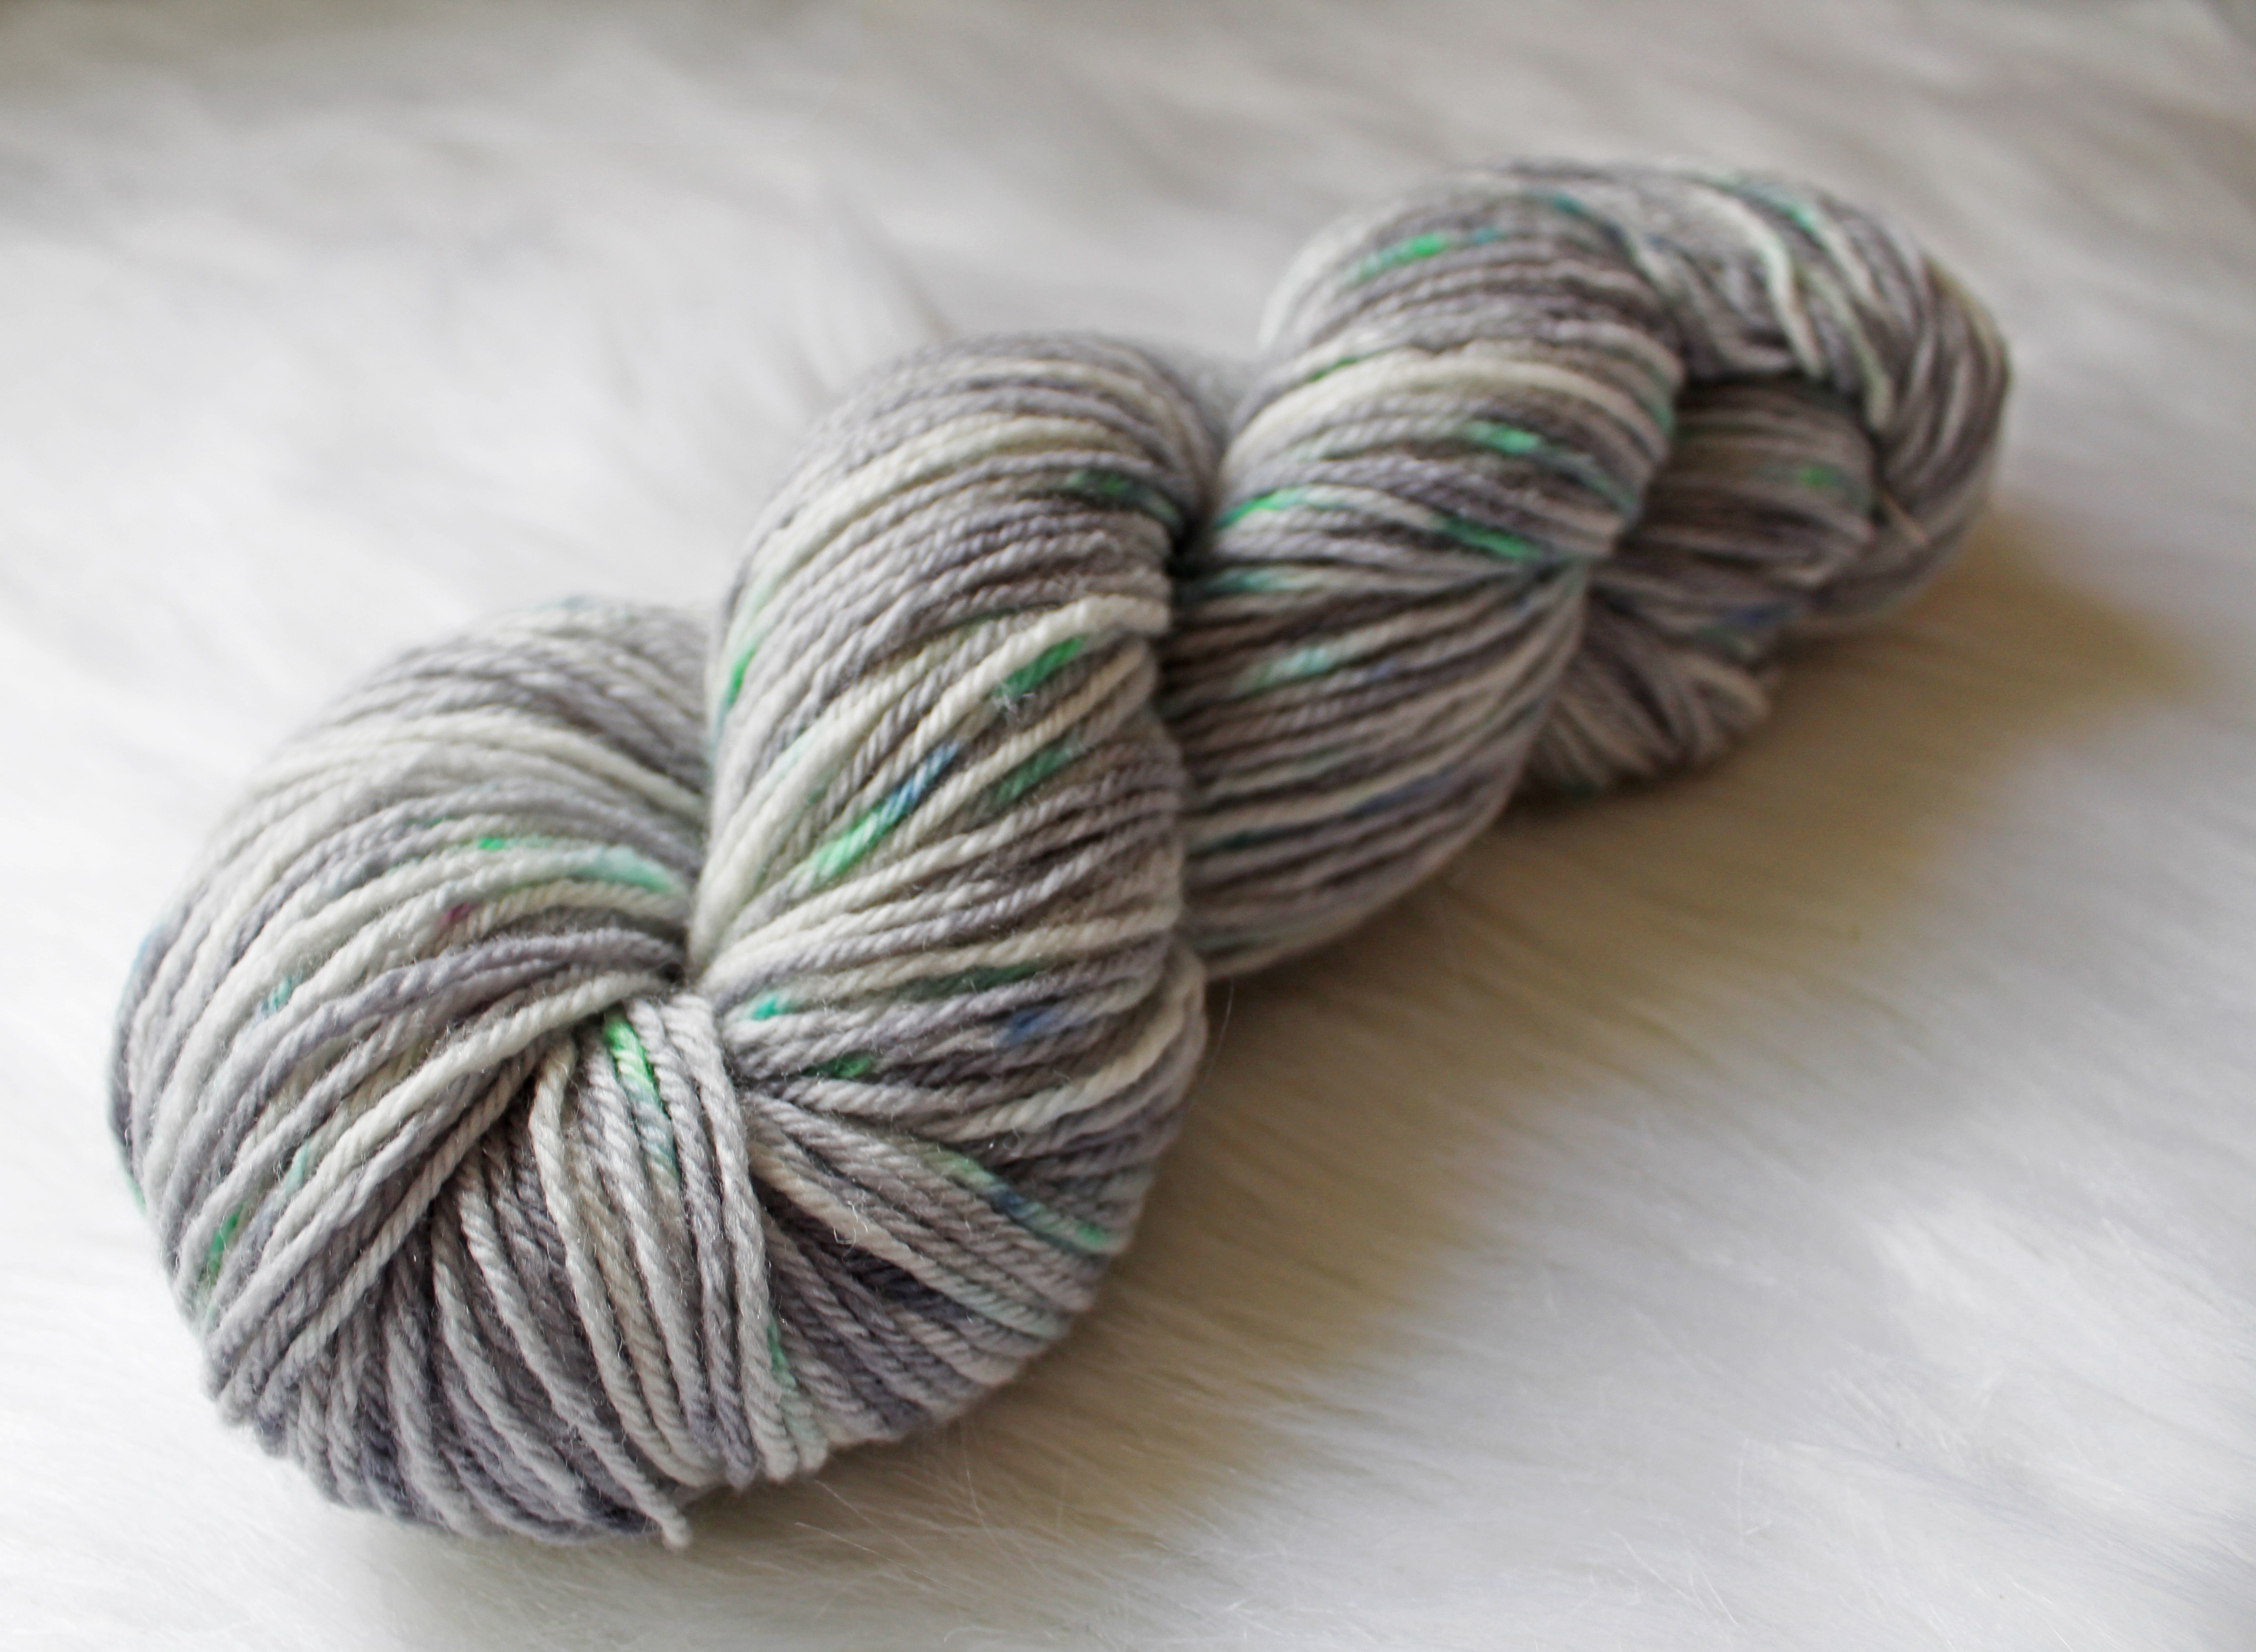 interview - Concrete, a colorway of Springtime in Paris (image ©Unicorn Yarn Co.)